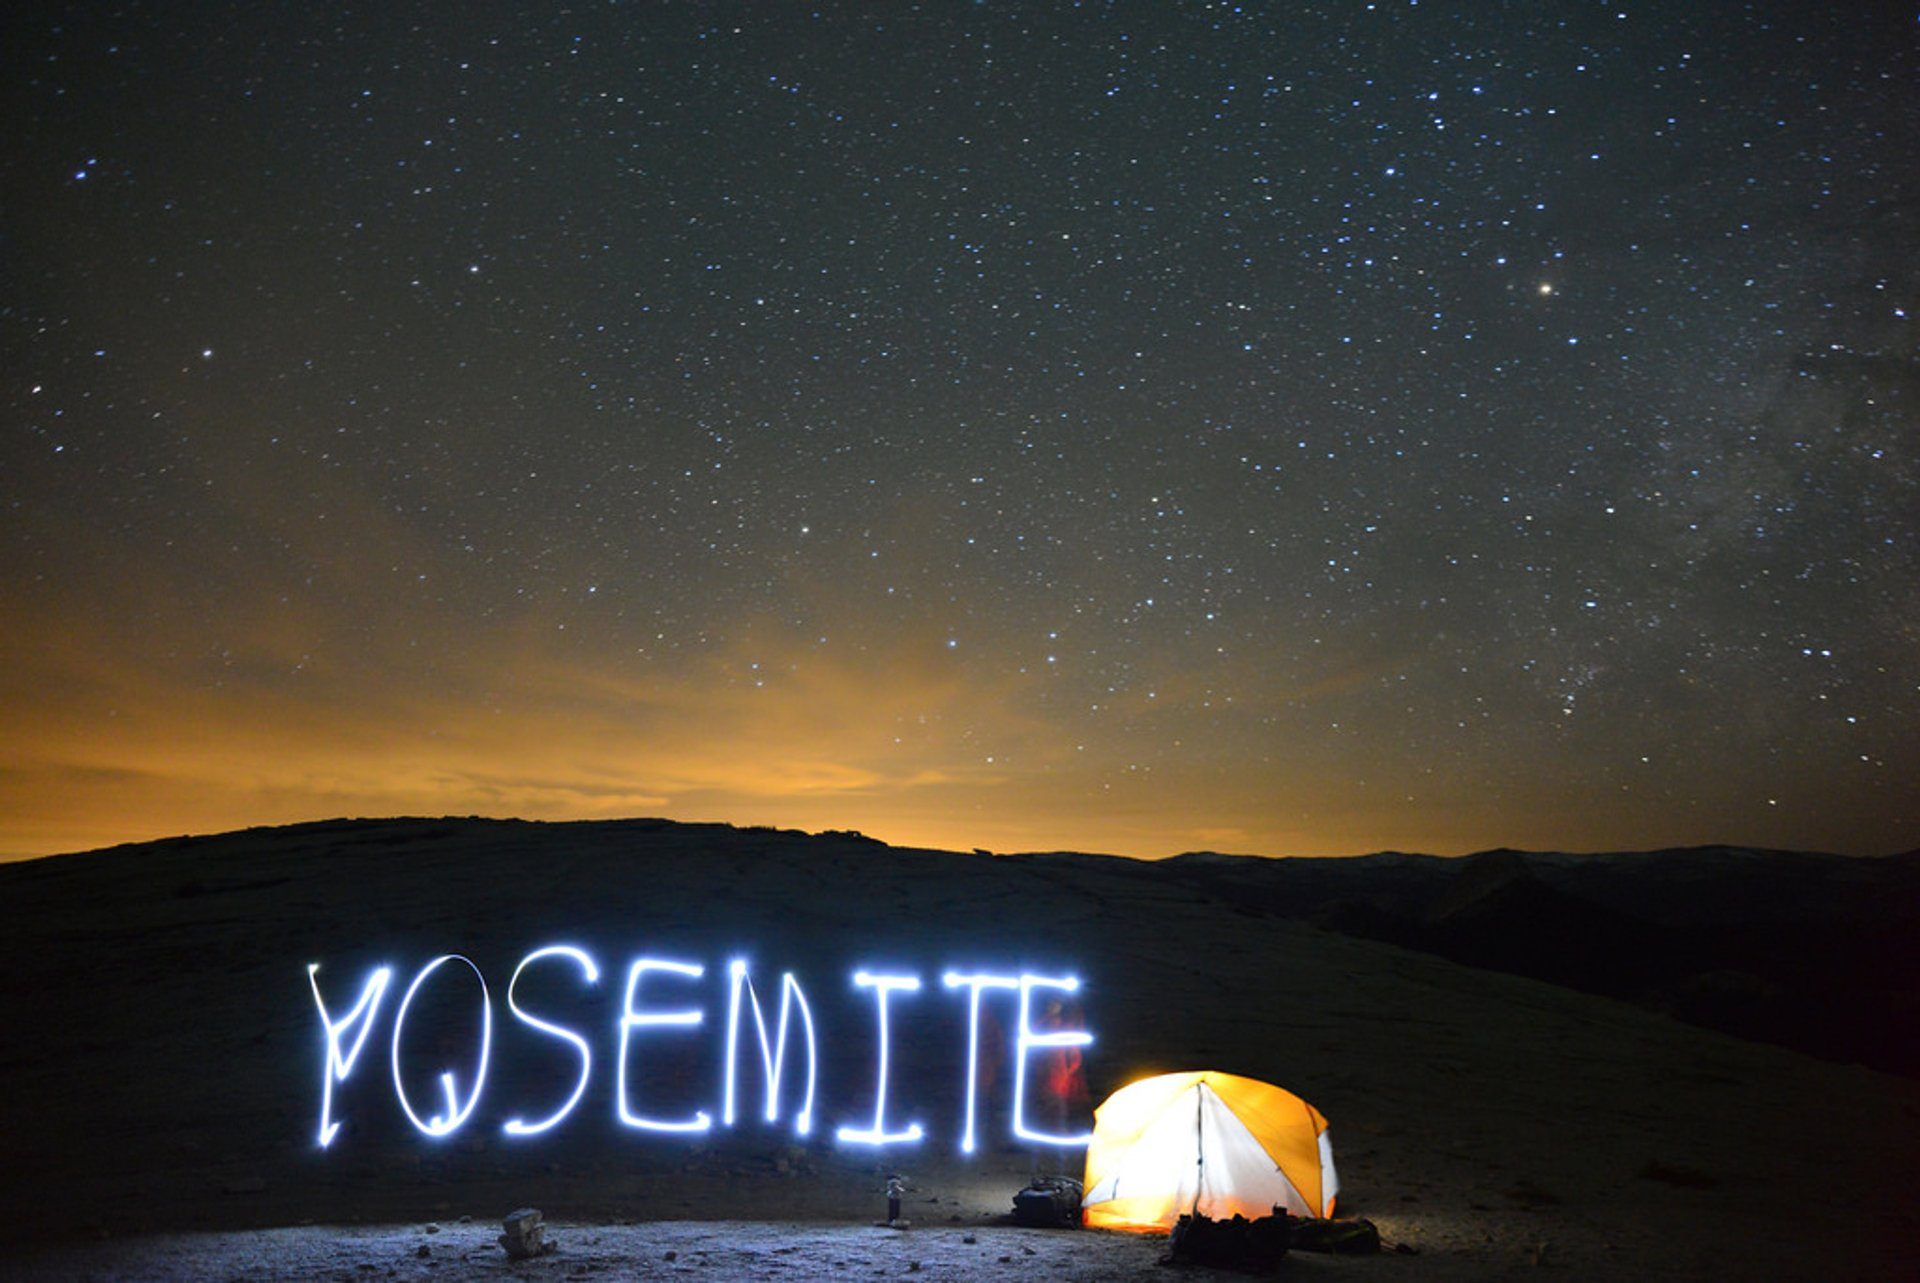 Stargazing in Yosemite - Best Time